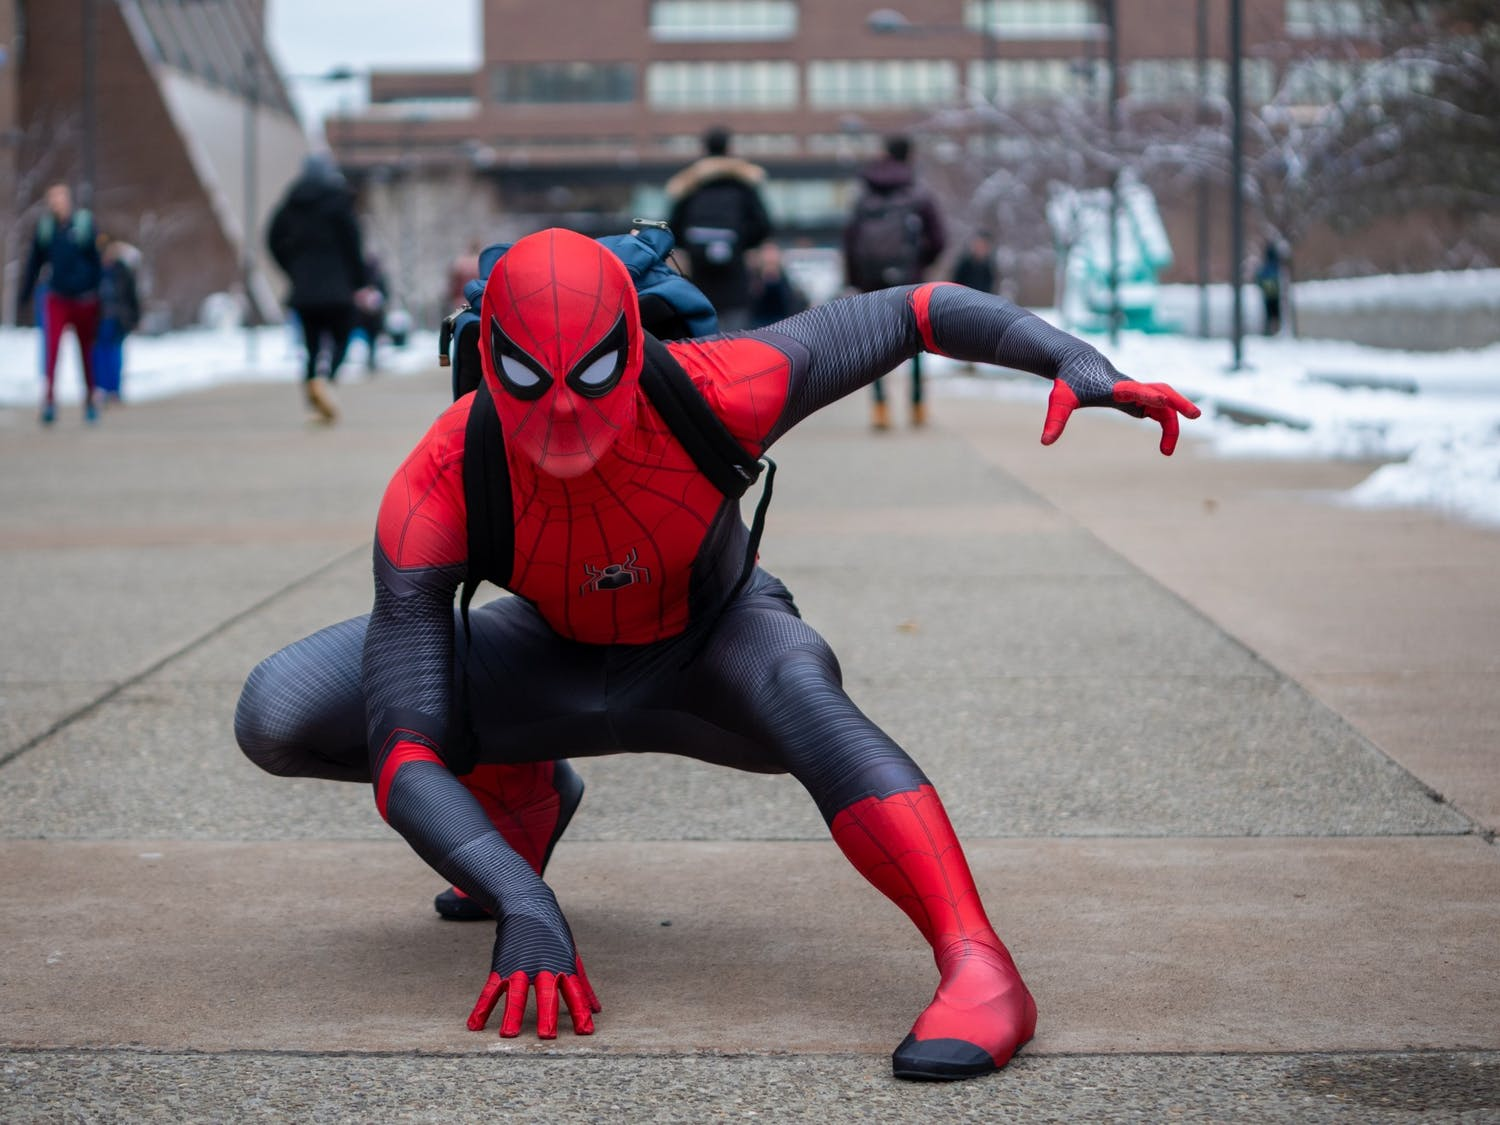 UB Spider-Man recreates iconic Spider-Man poses outside Student Union.